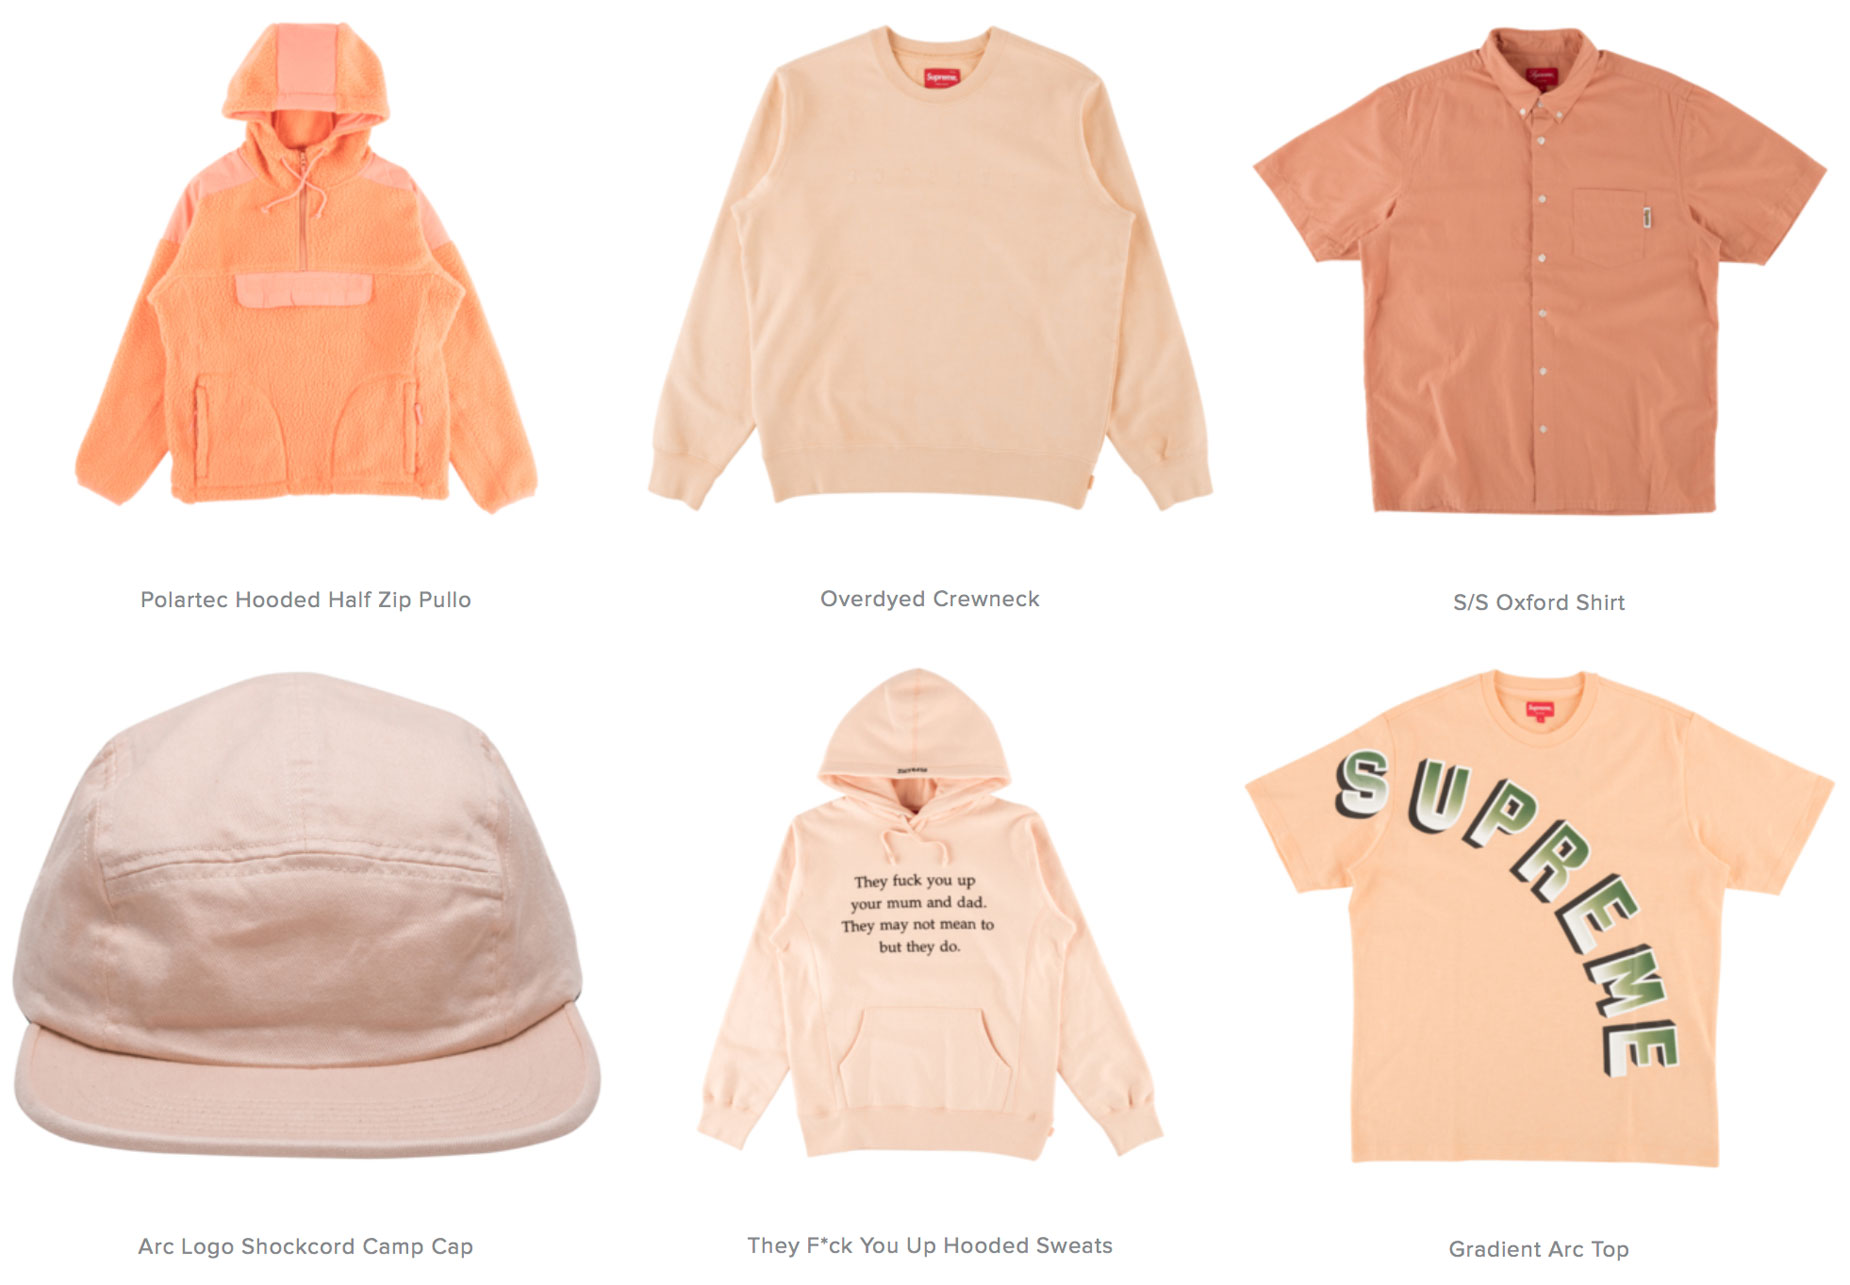 yeezy-boost-350-clay-supreme-clothing-shirts-caps-hats-match-3